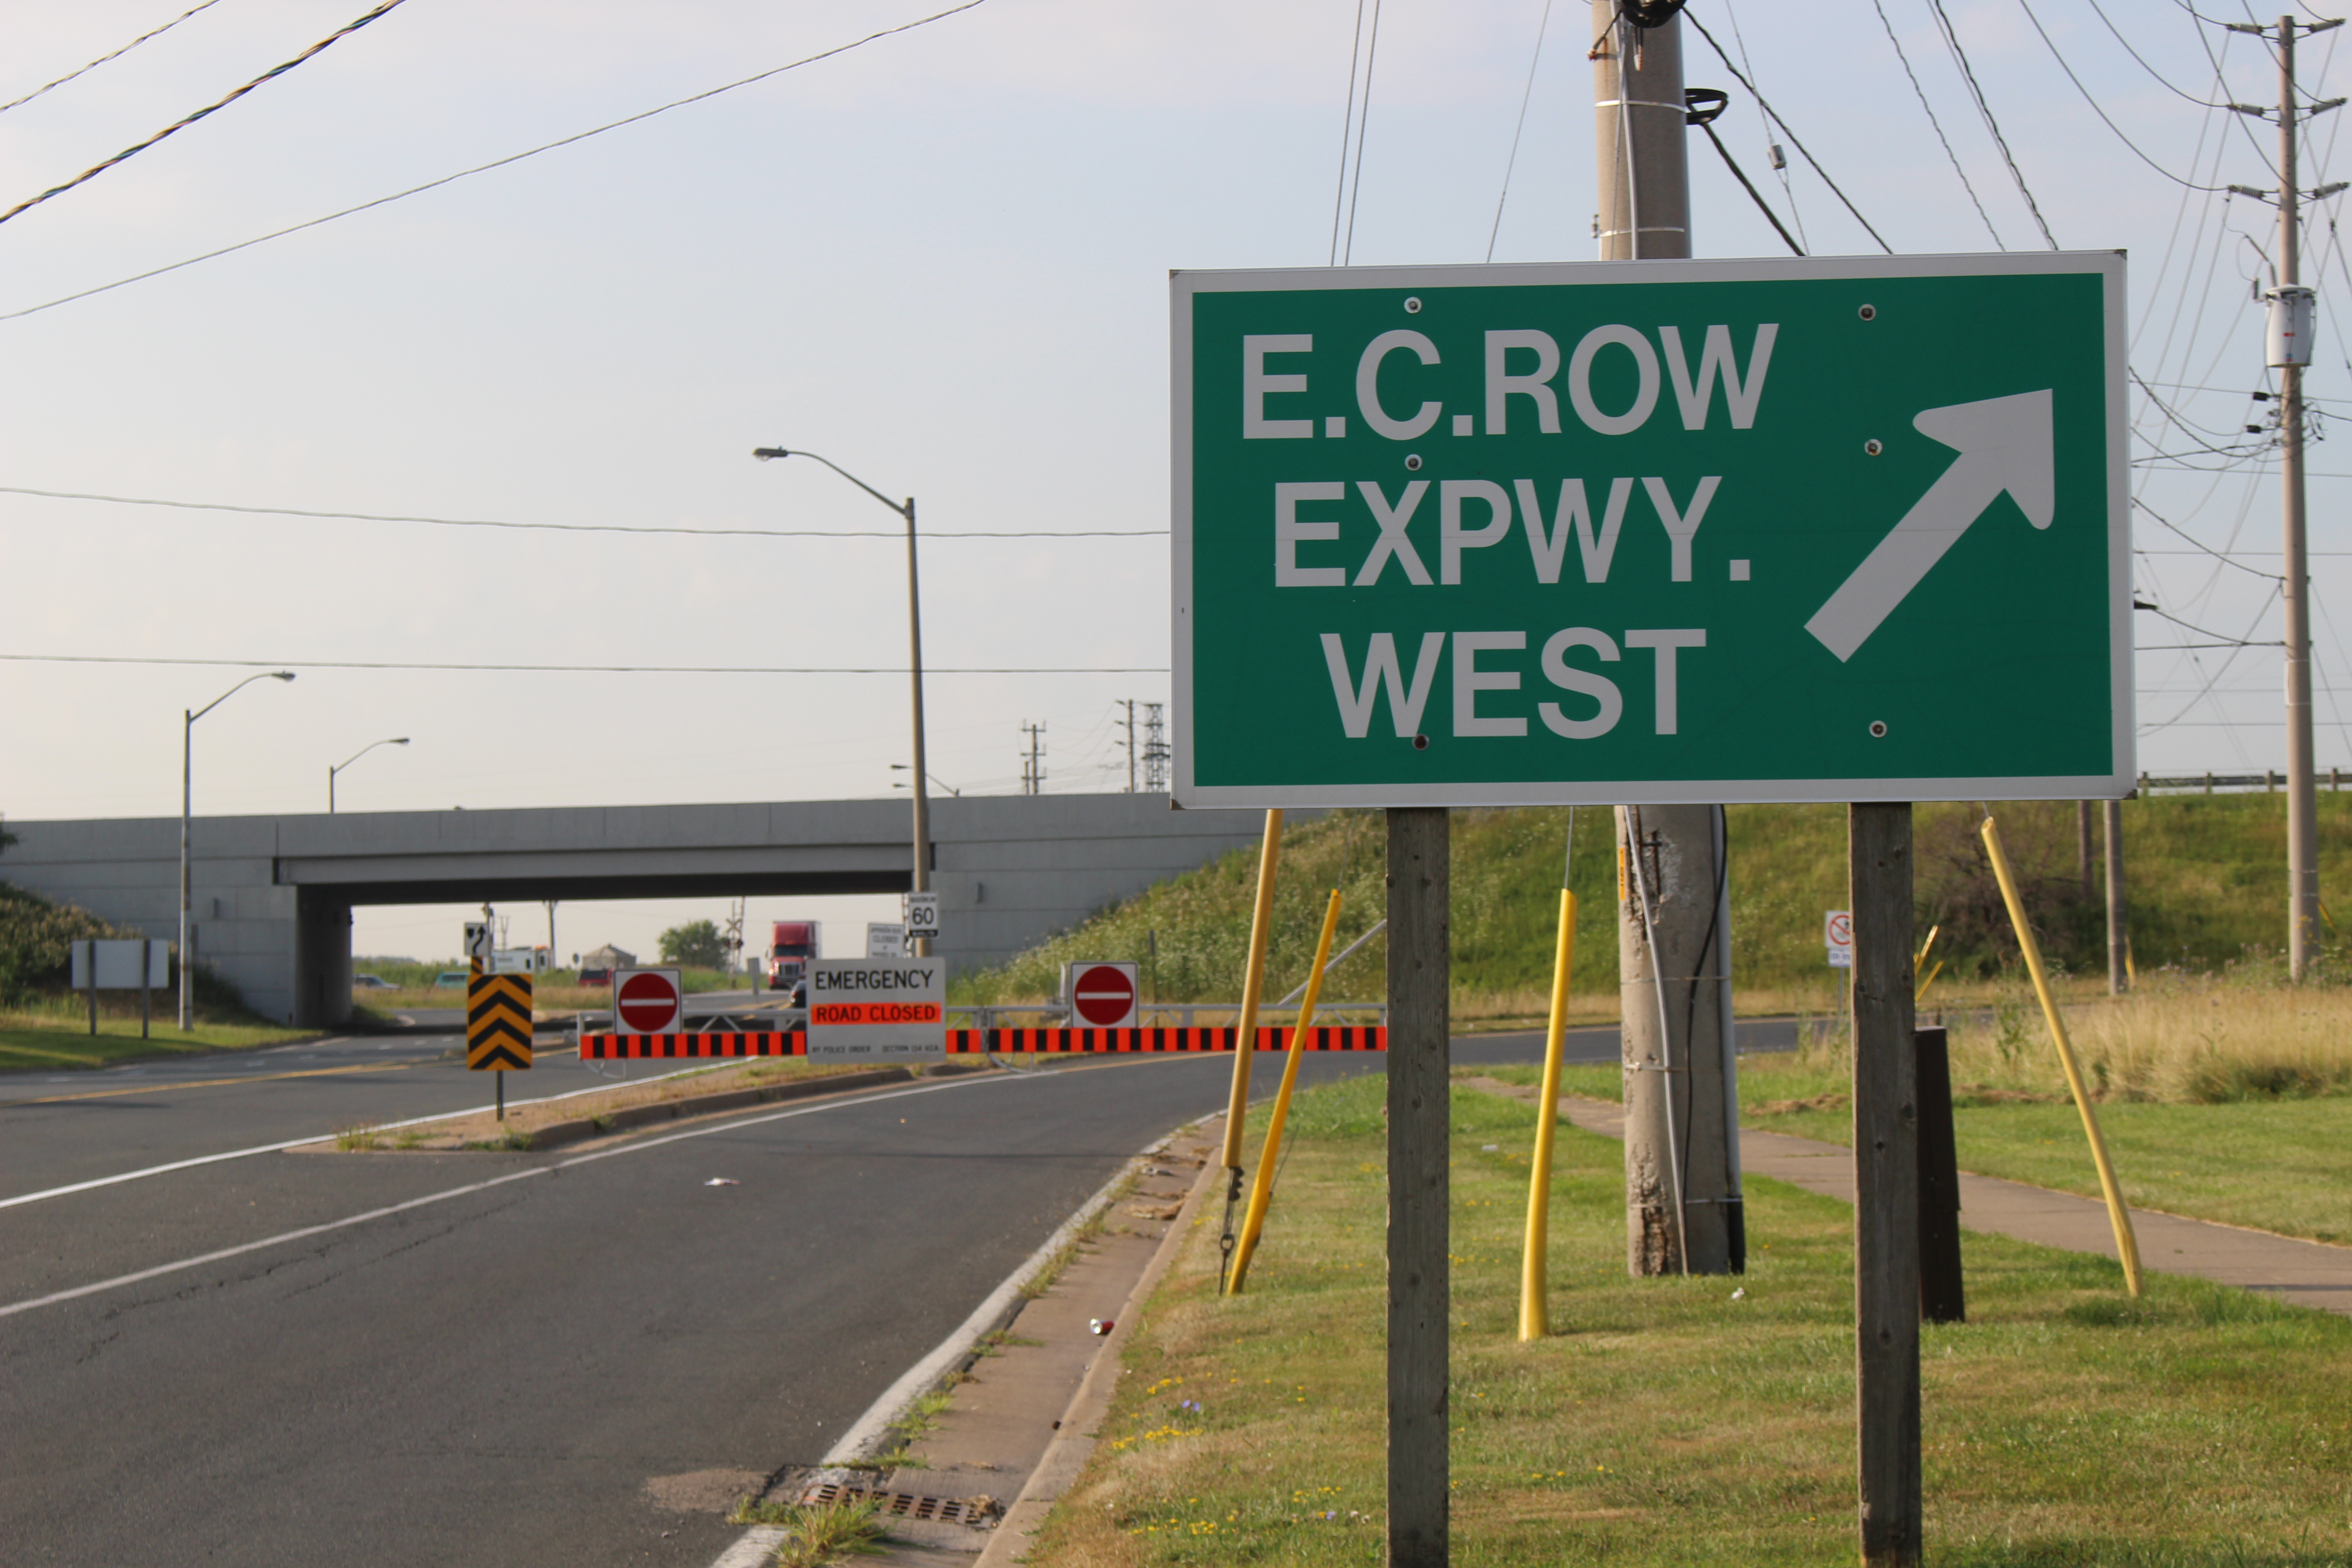 Jefferson Blvd. at the E.C. Row Exwy. in Windsor July 29, 2015. (Photo by Adelle Loiselle)